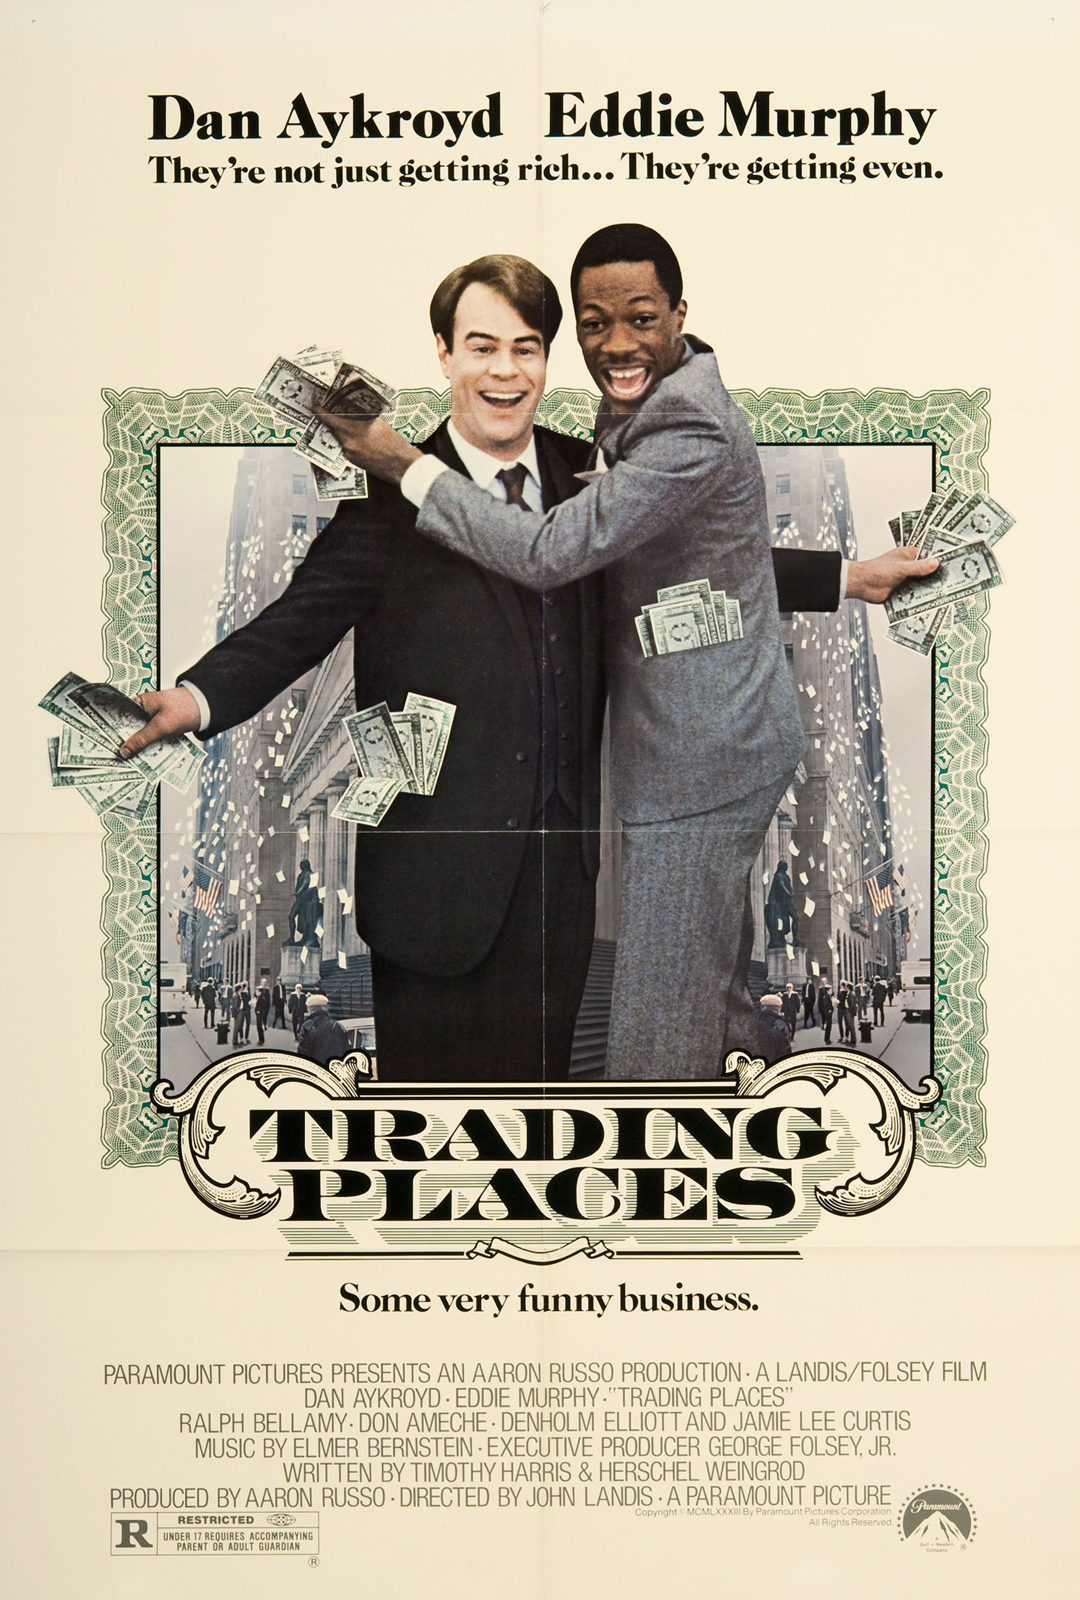 Trading Places Movie at Best Stock Market movies article - Arable Life